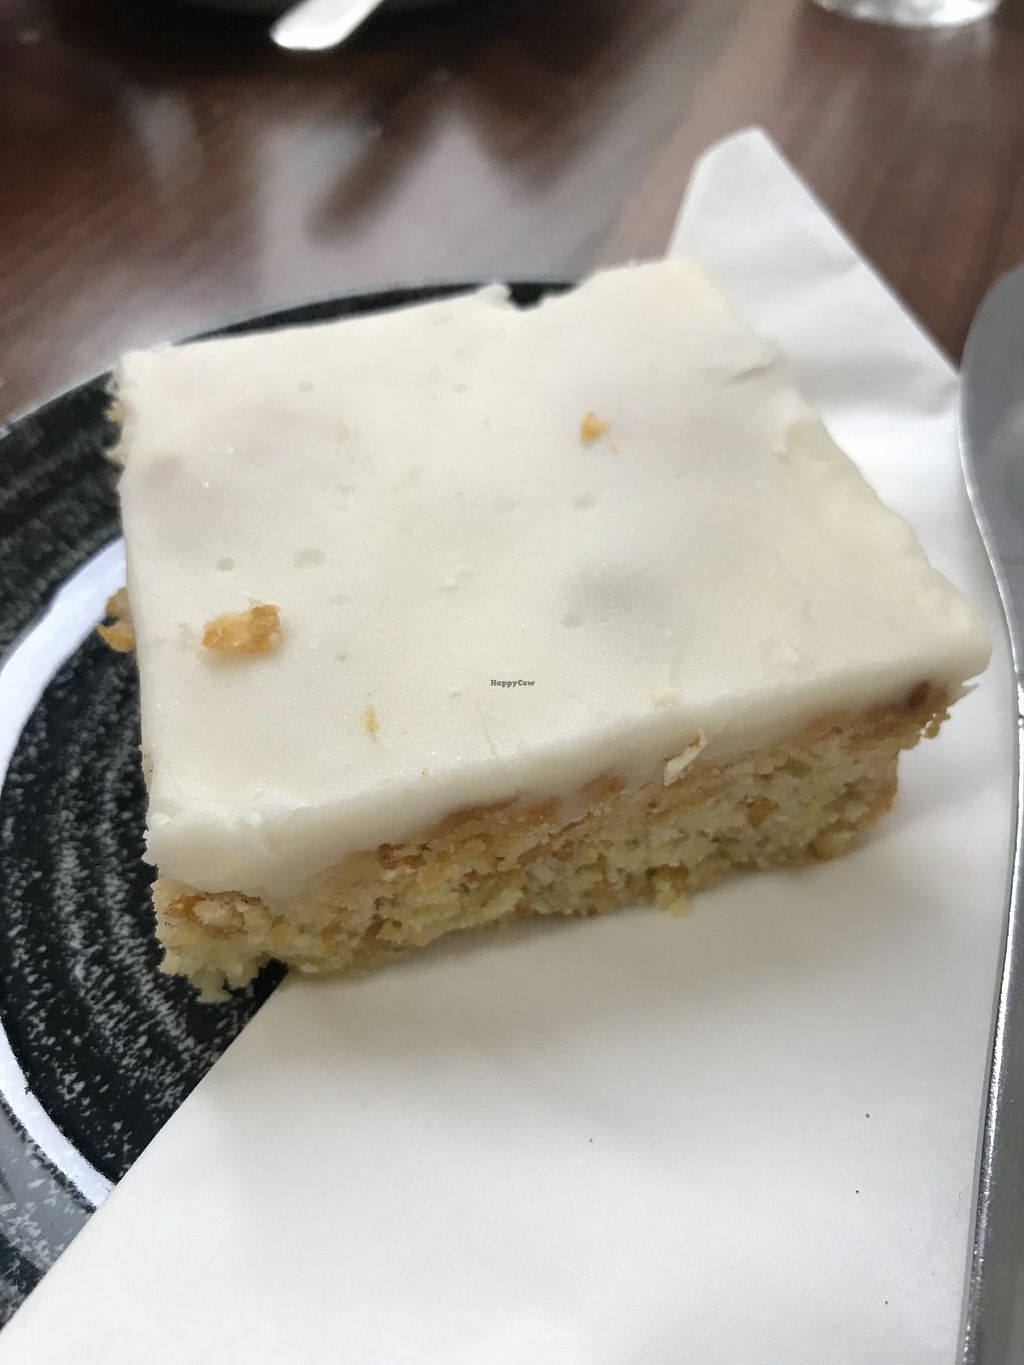 """Photo of The Flame Tree Cafe  by <a href=""""/members/profile/AshleighC"""">AshleighC</a> <br/>Vegan cornflake coconut crunch traybake <br/> February 19, 2018  - <a href='/contact/abuse/image/76399/361401'>Report</a>"""